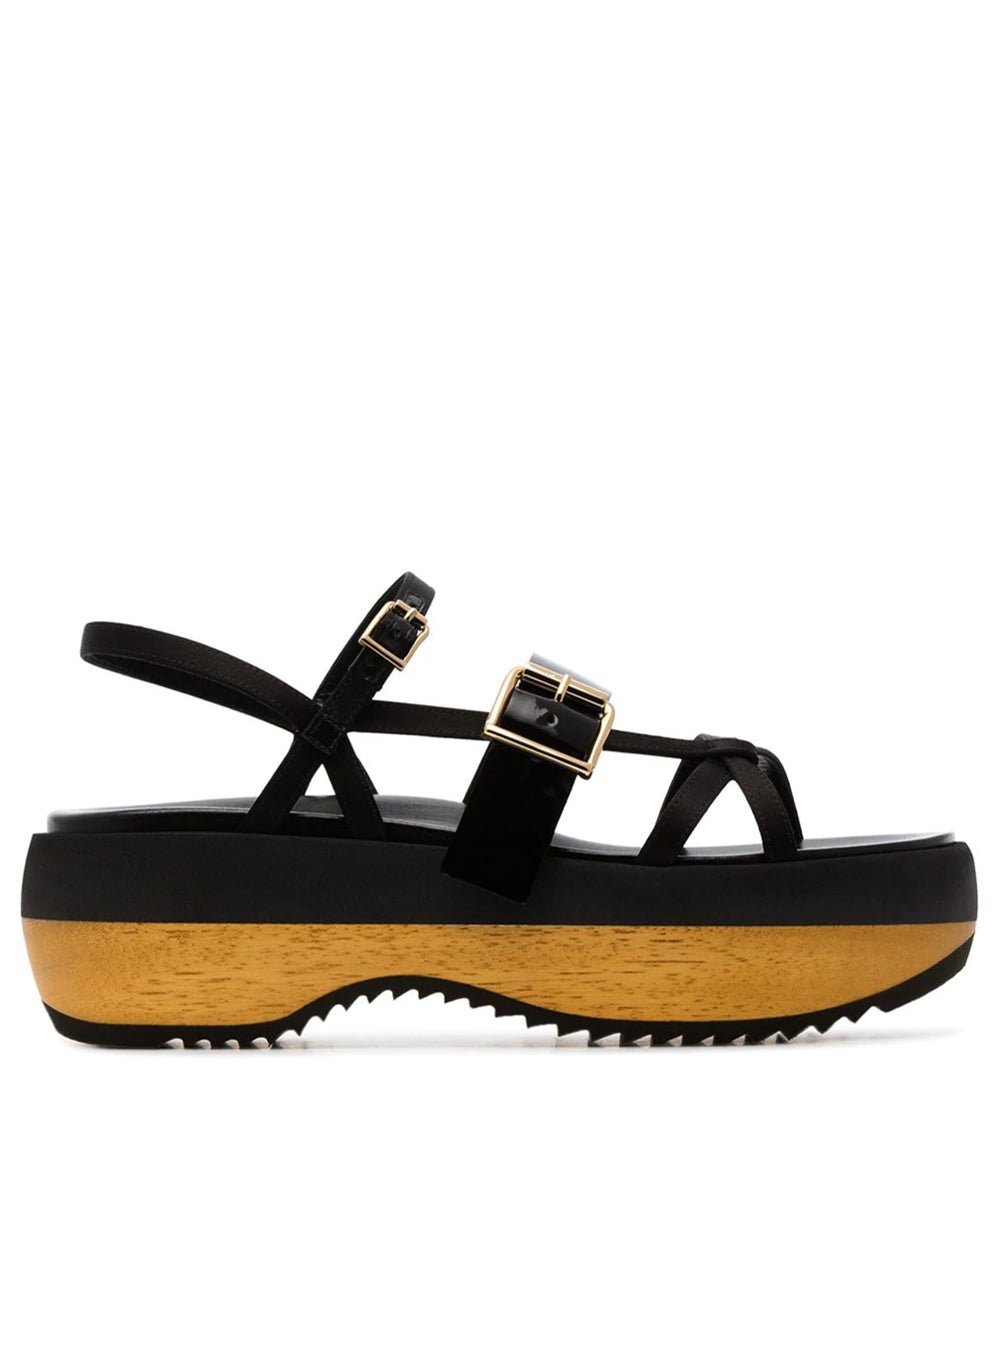 MARNI | Leather Flatform Sandals in Black